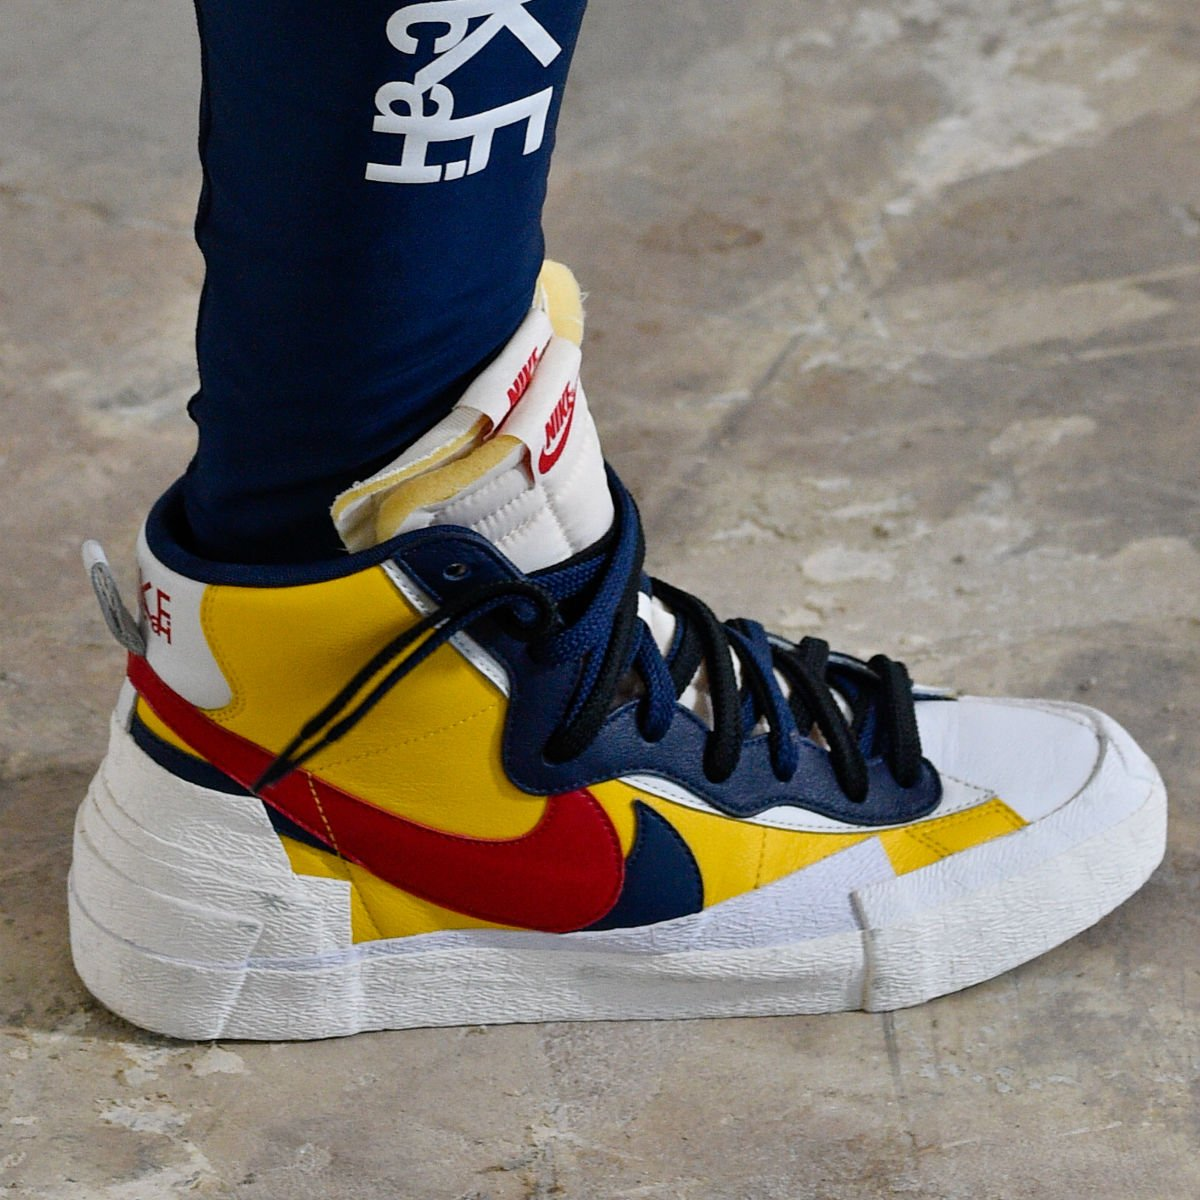 best website af364 9cbfe Sacai x Nike fusions previewed today in Paris.